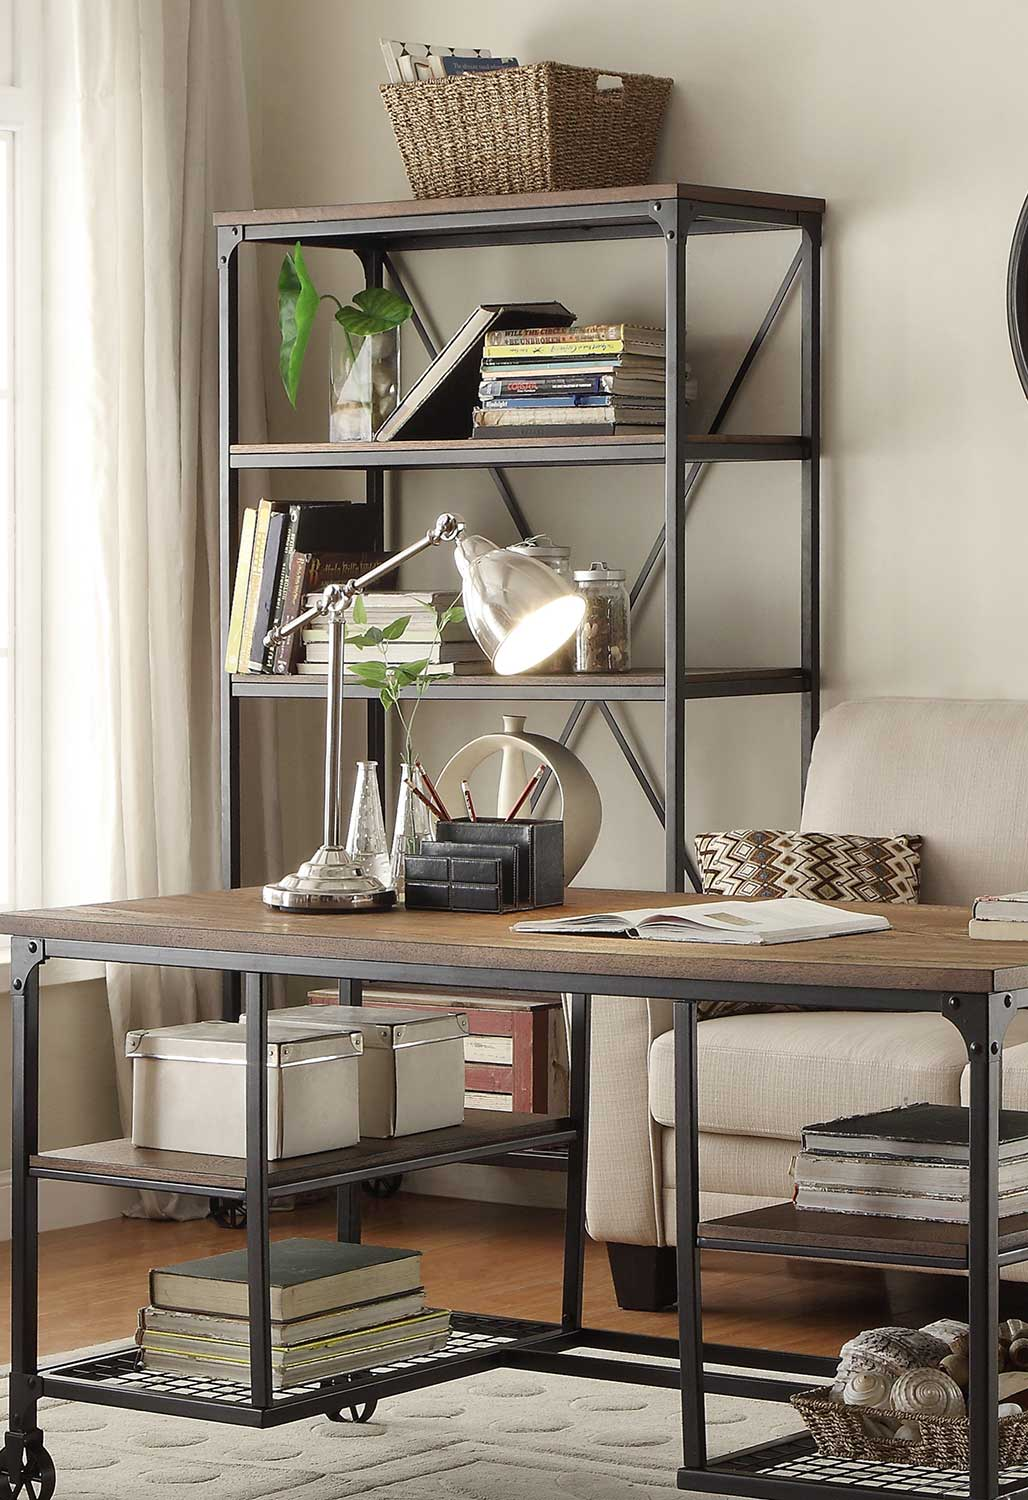 Homelegance Millwood 40W Bookcase - Weathered Wood Table Top with Metal Framing